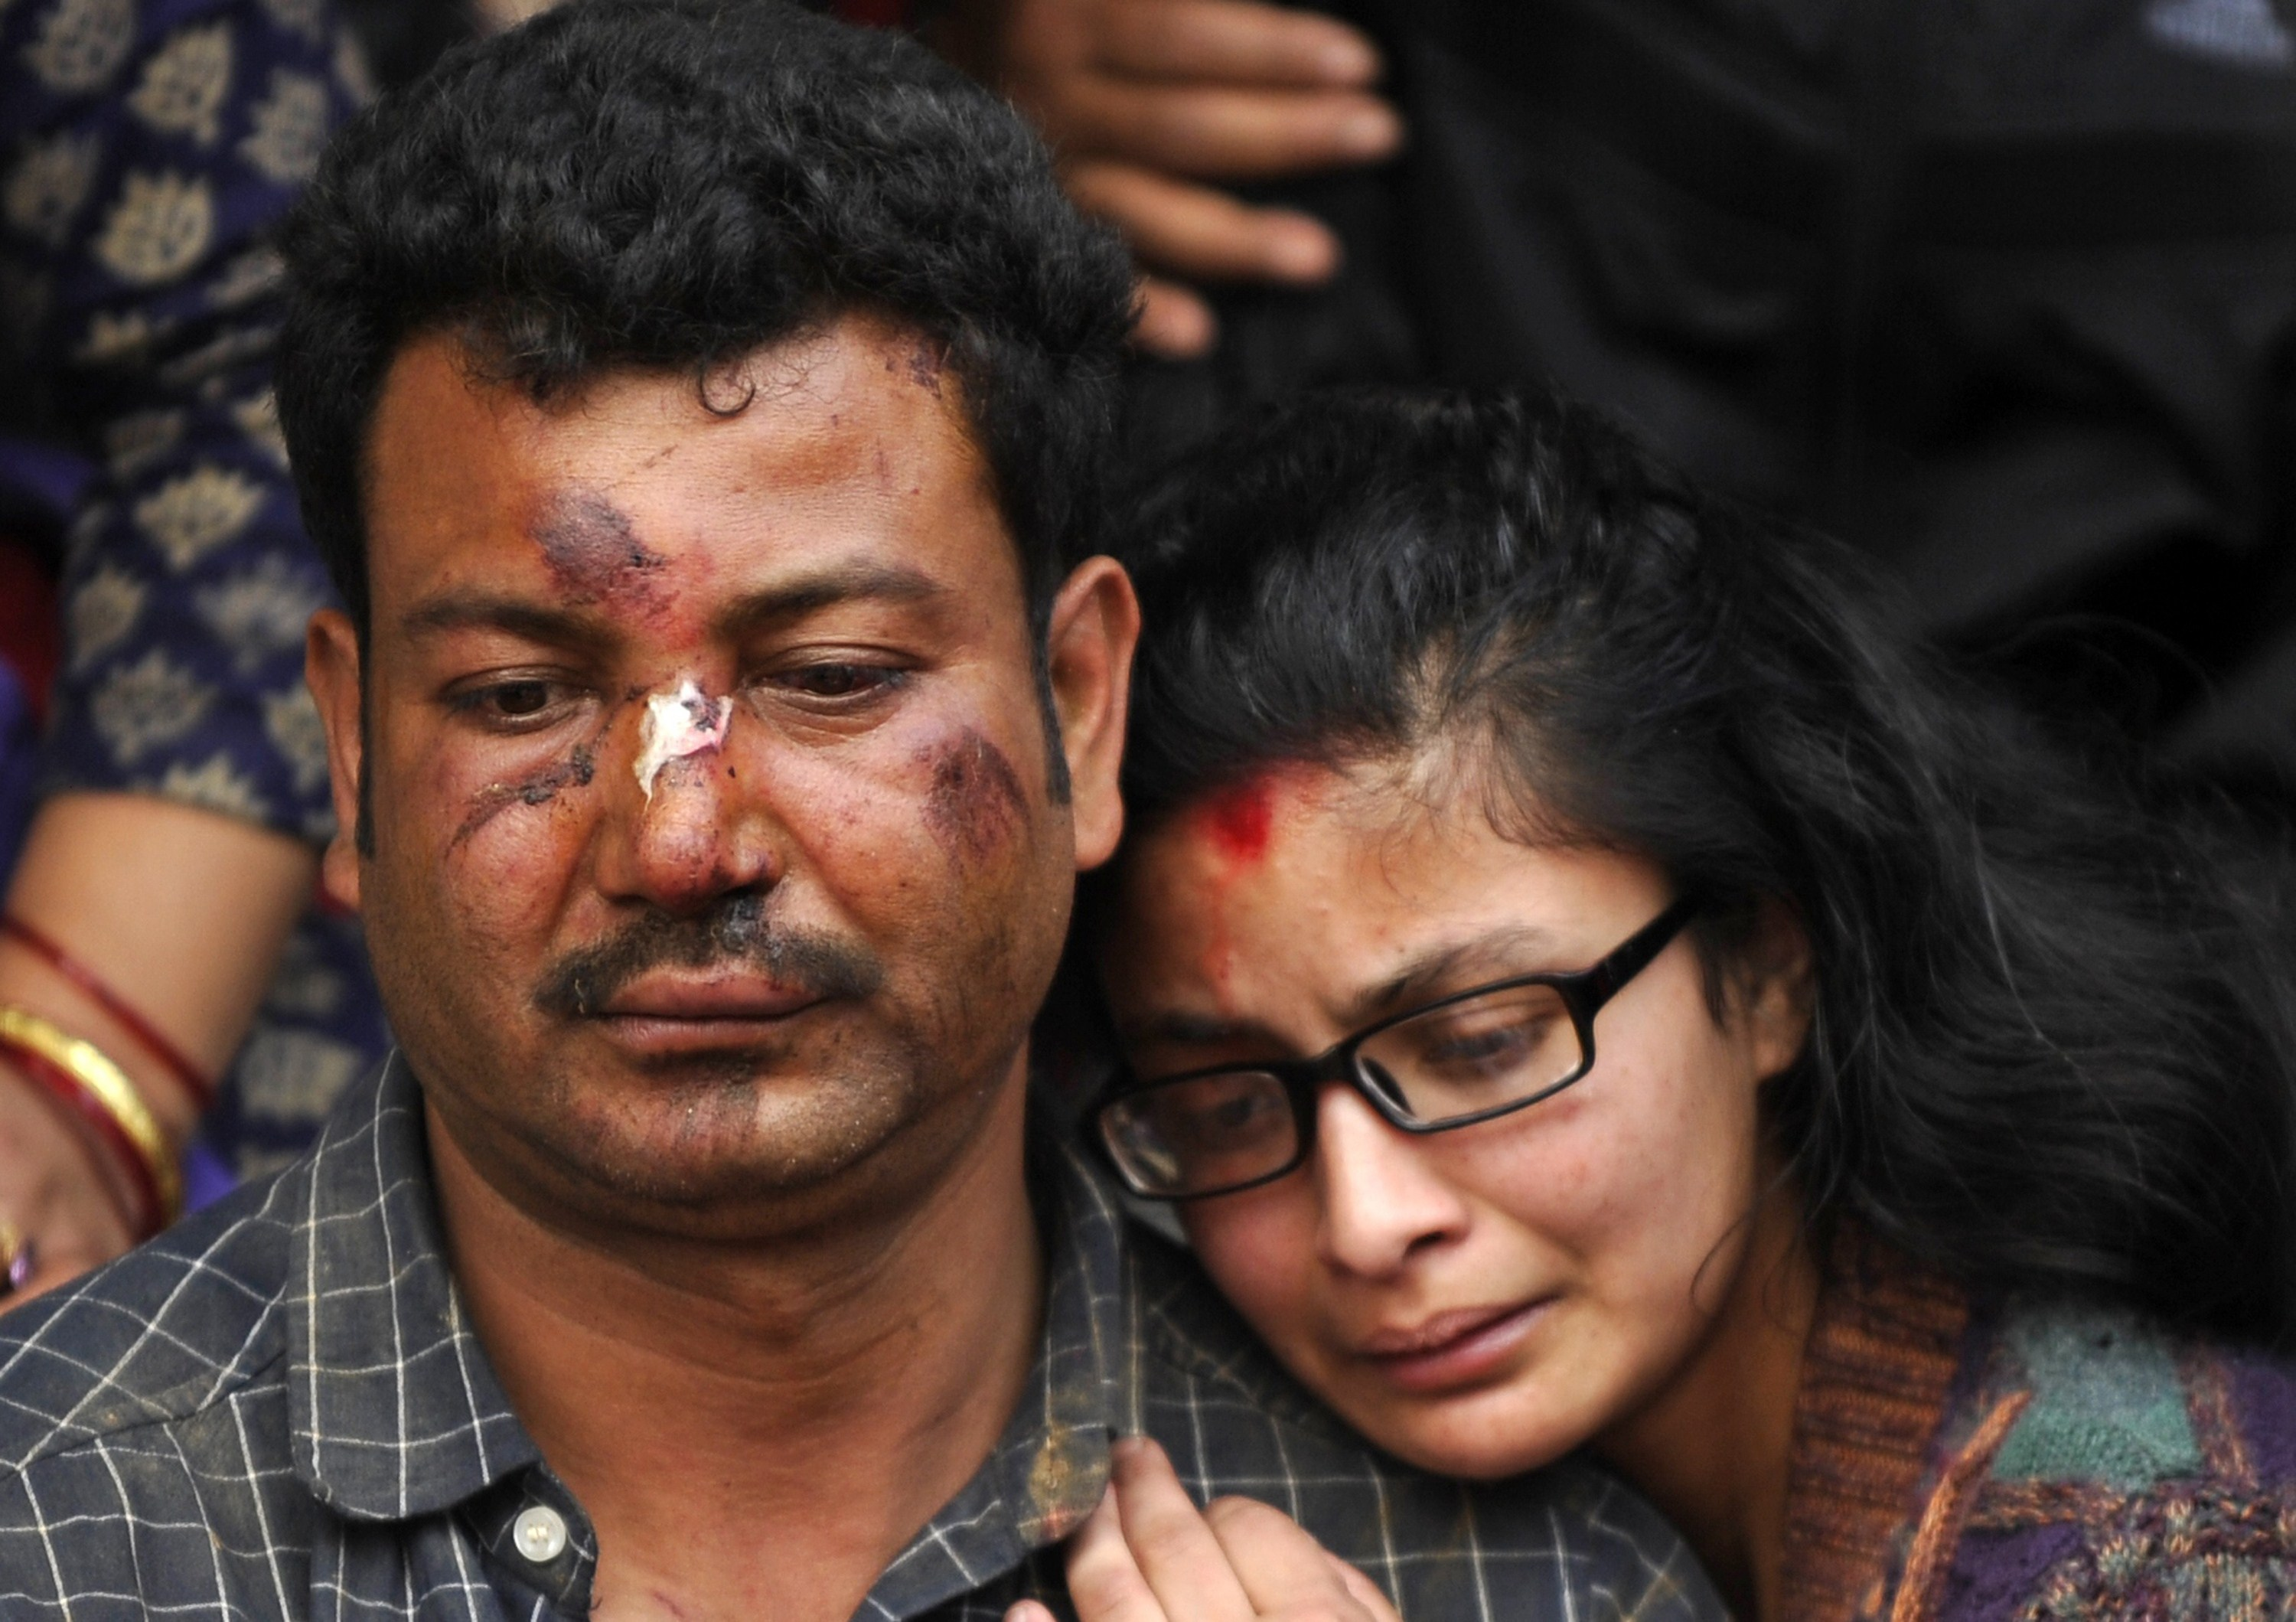 Nepalese residents mourn the death of a relative following an earthquake, at a mass cremation at Pashupatinath in Kathmandu on April 26, 2015. Photo by Prakash Mathema/AFP/Getty Images.